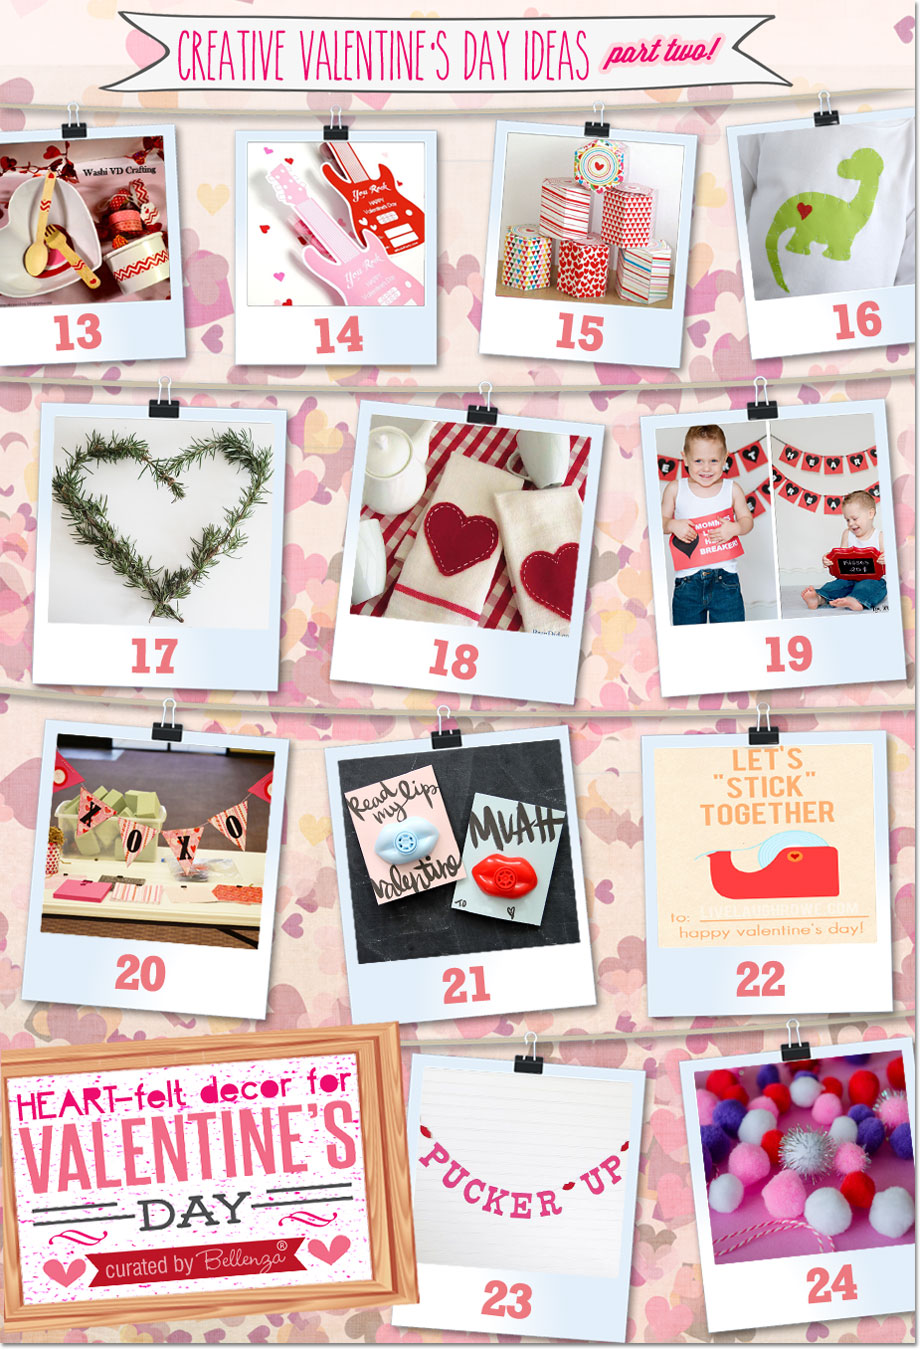 Decorations and gifts for Valentine's Day with a handmade look that includes whimsical and funky designs!